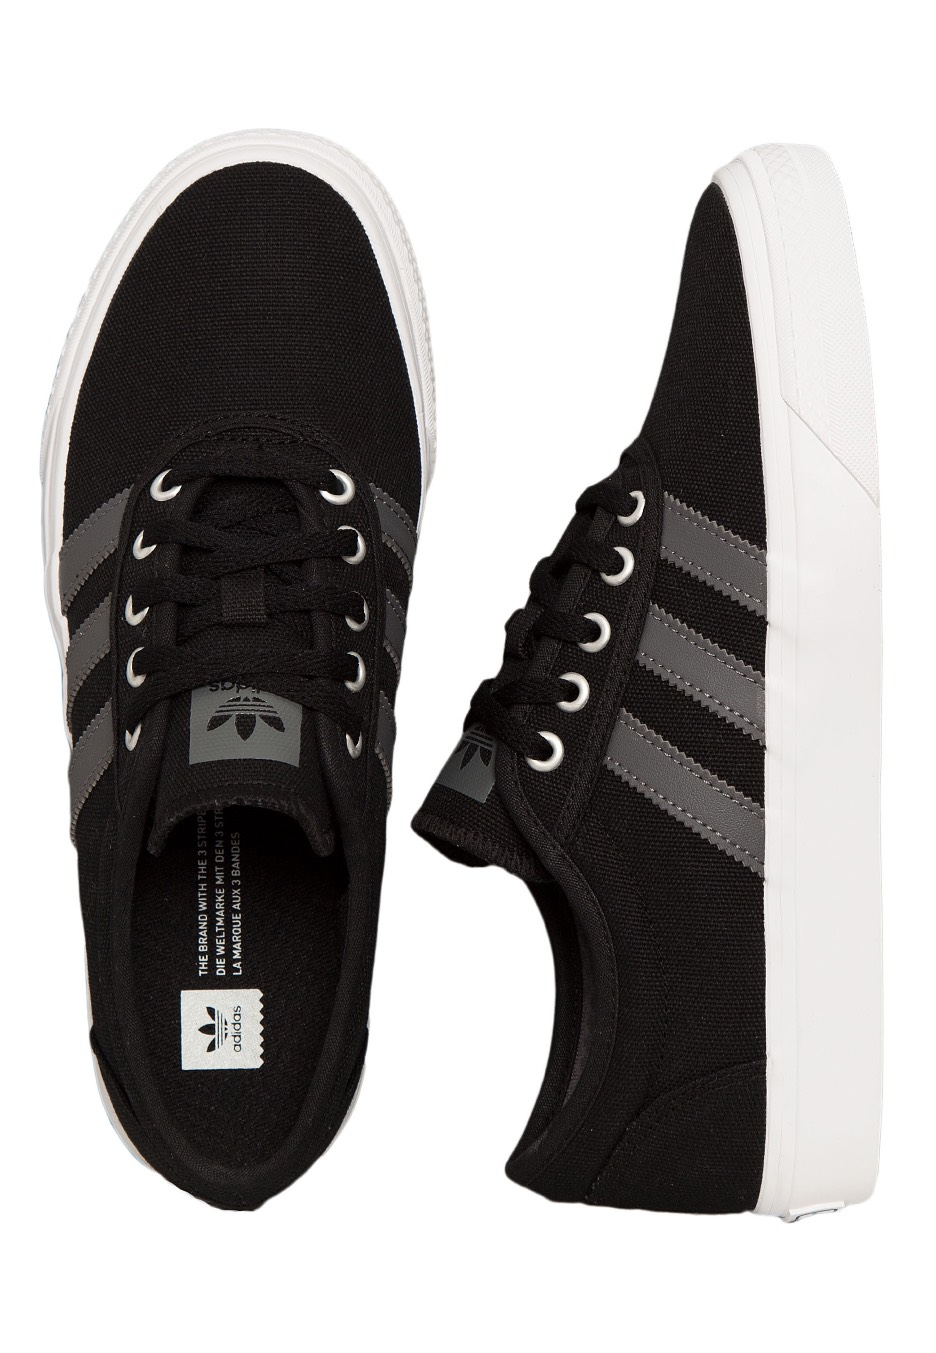 huge discount 7b5ad f0e9d Adidas - Adi-Ease Core BlackGrey FourFtwr White - Shoes - Impericon.com UK